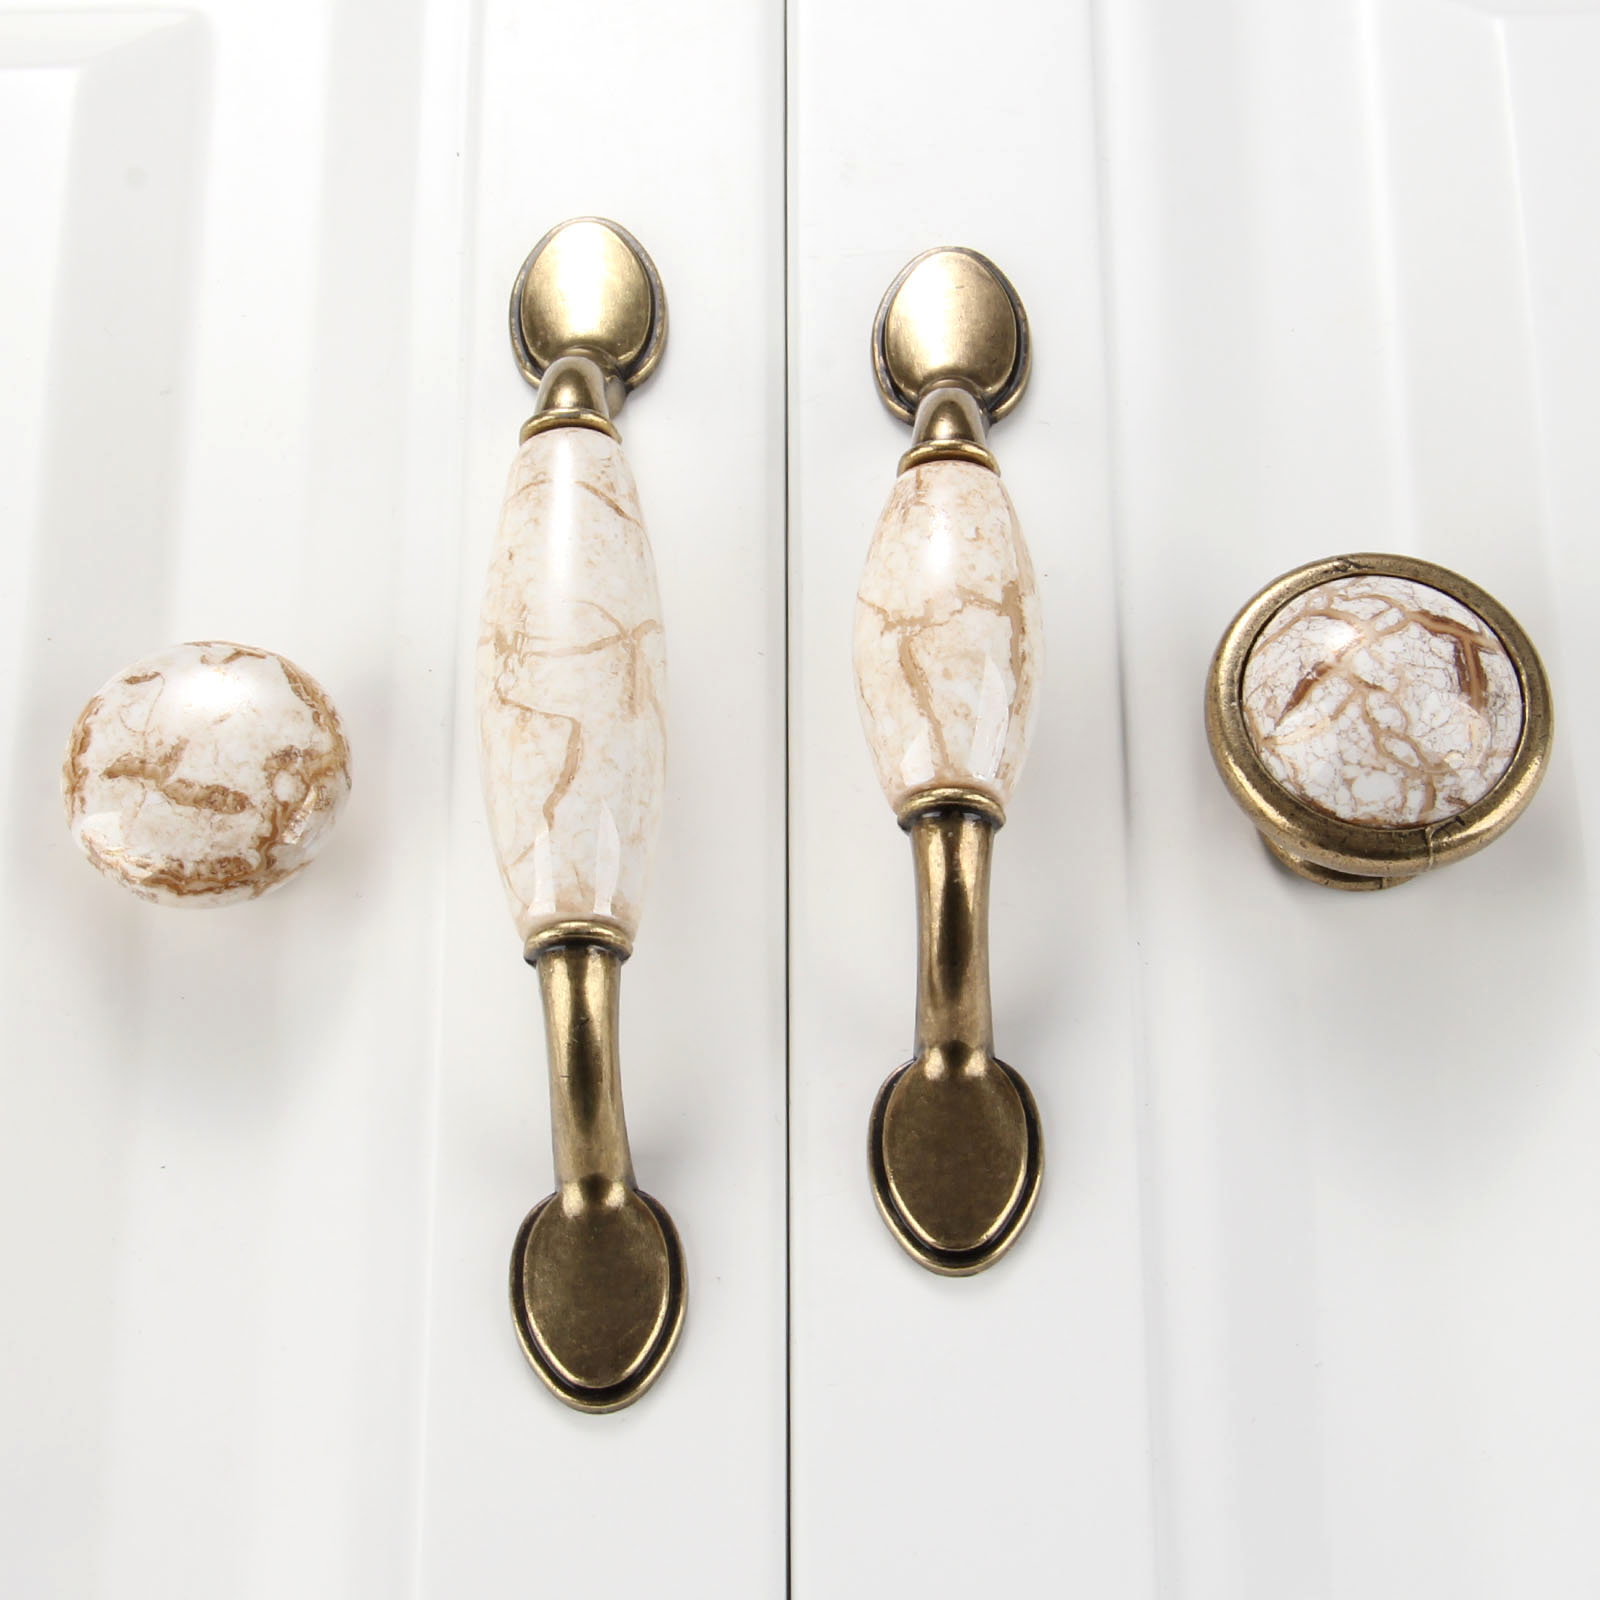 Antique Furniture Handle Ceramic Drawer Door Knob Closet Cupboard Pull Handle Cabinet Knobs and Handles Modern Kitchen Handle retro vintage kitchen drawer cabinet door flower handle furniture knobs hardware cupboard antique metal shell pull handles 1pc